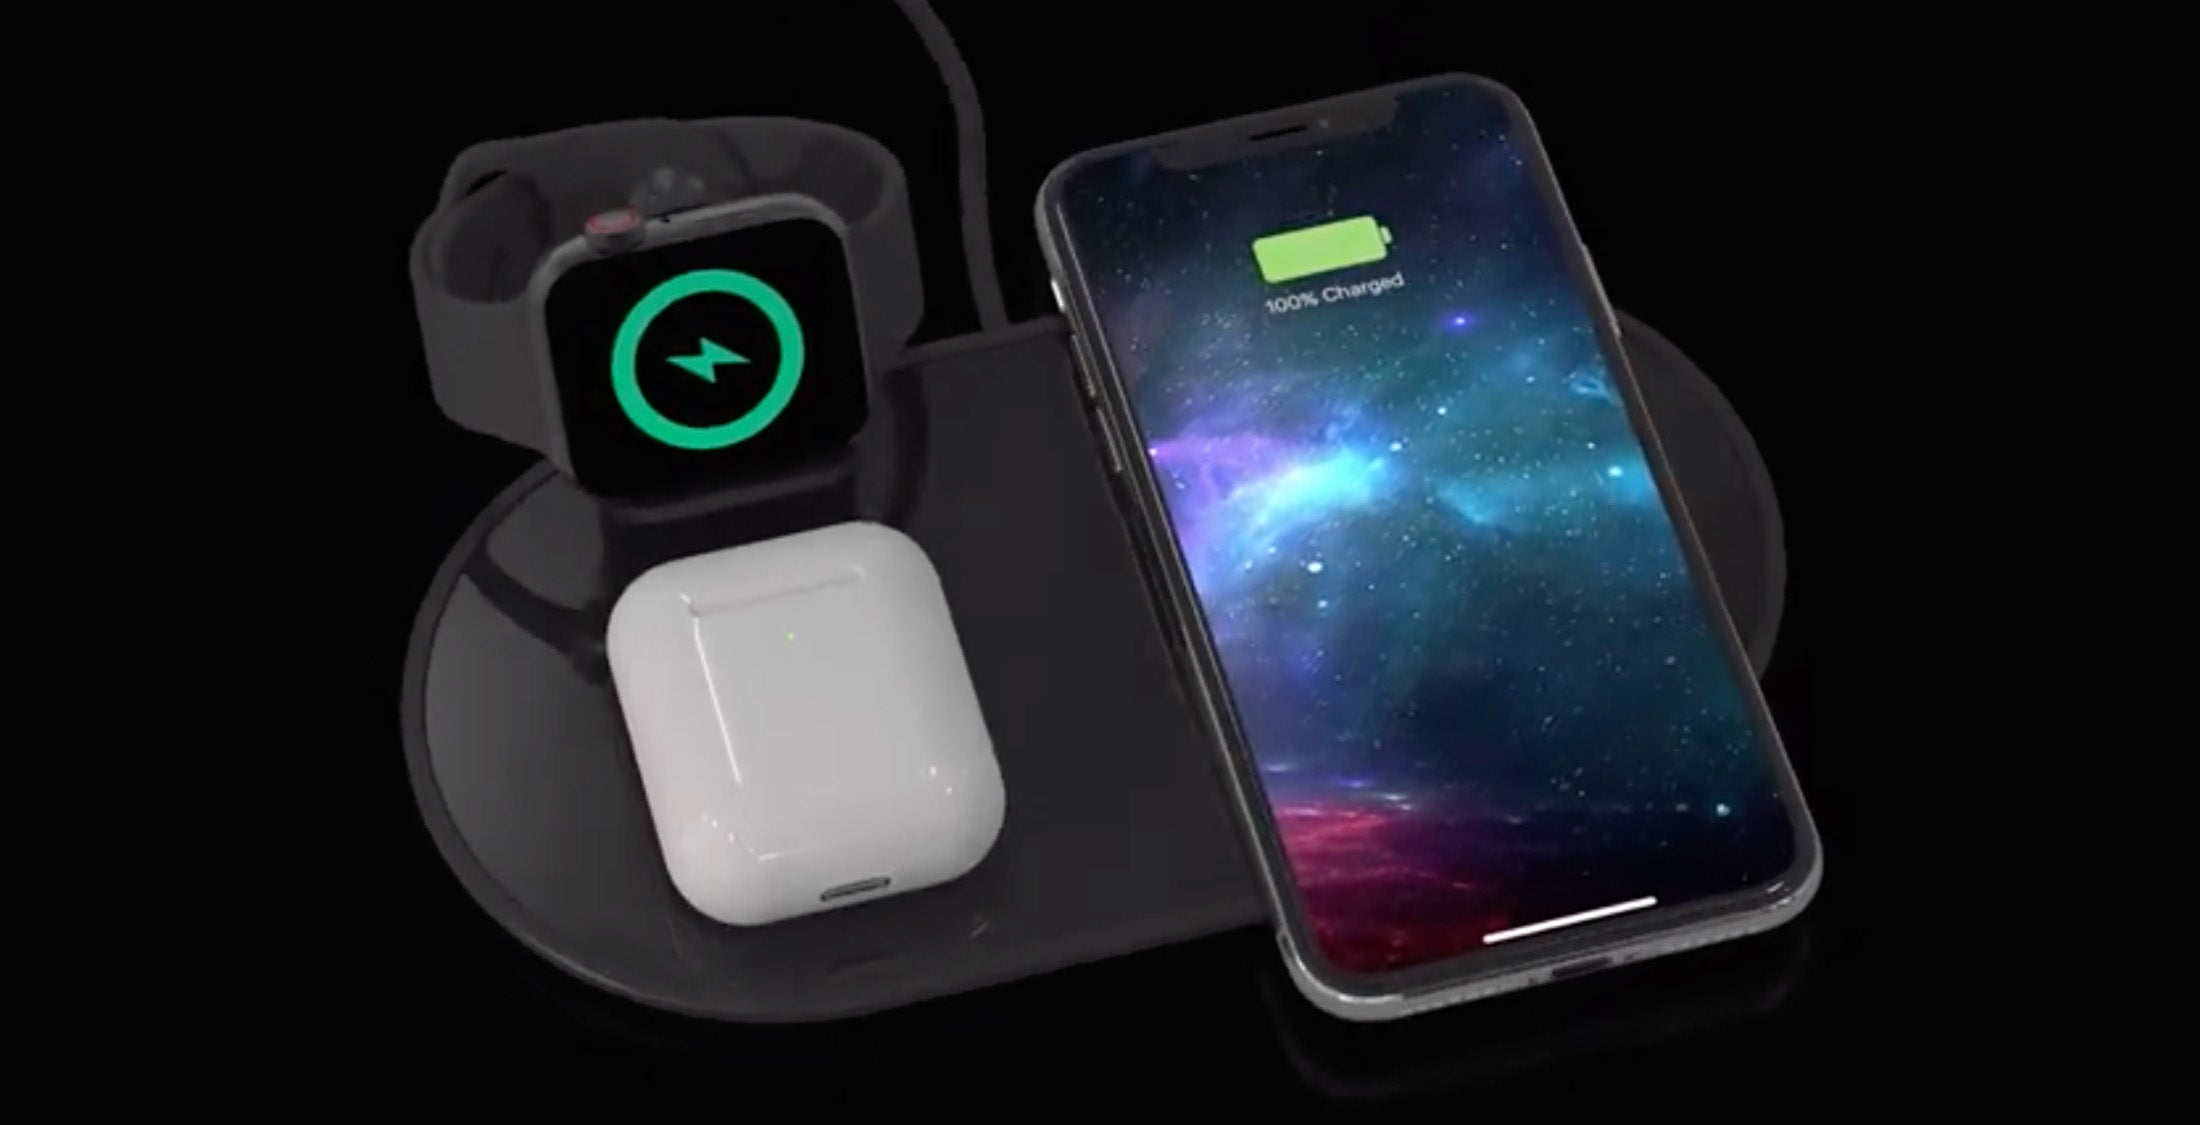 Who needs AirPower? Apple offering 3-in-1 wireless charger from